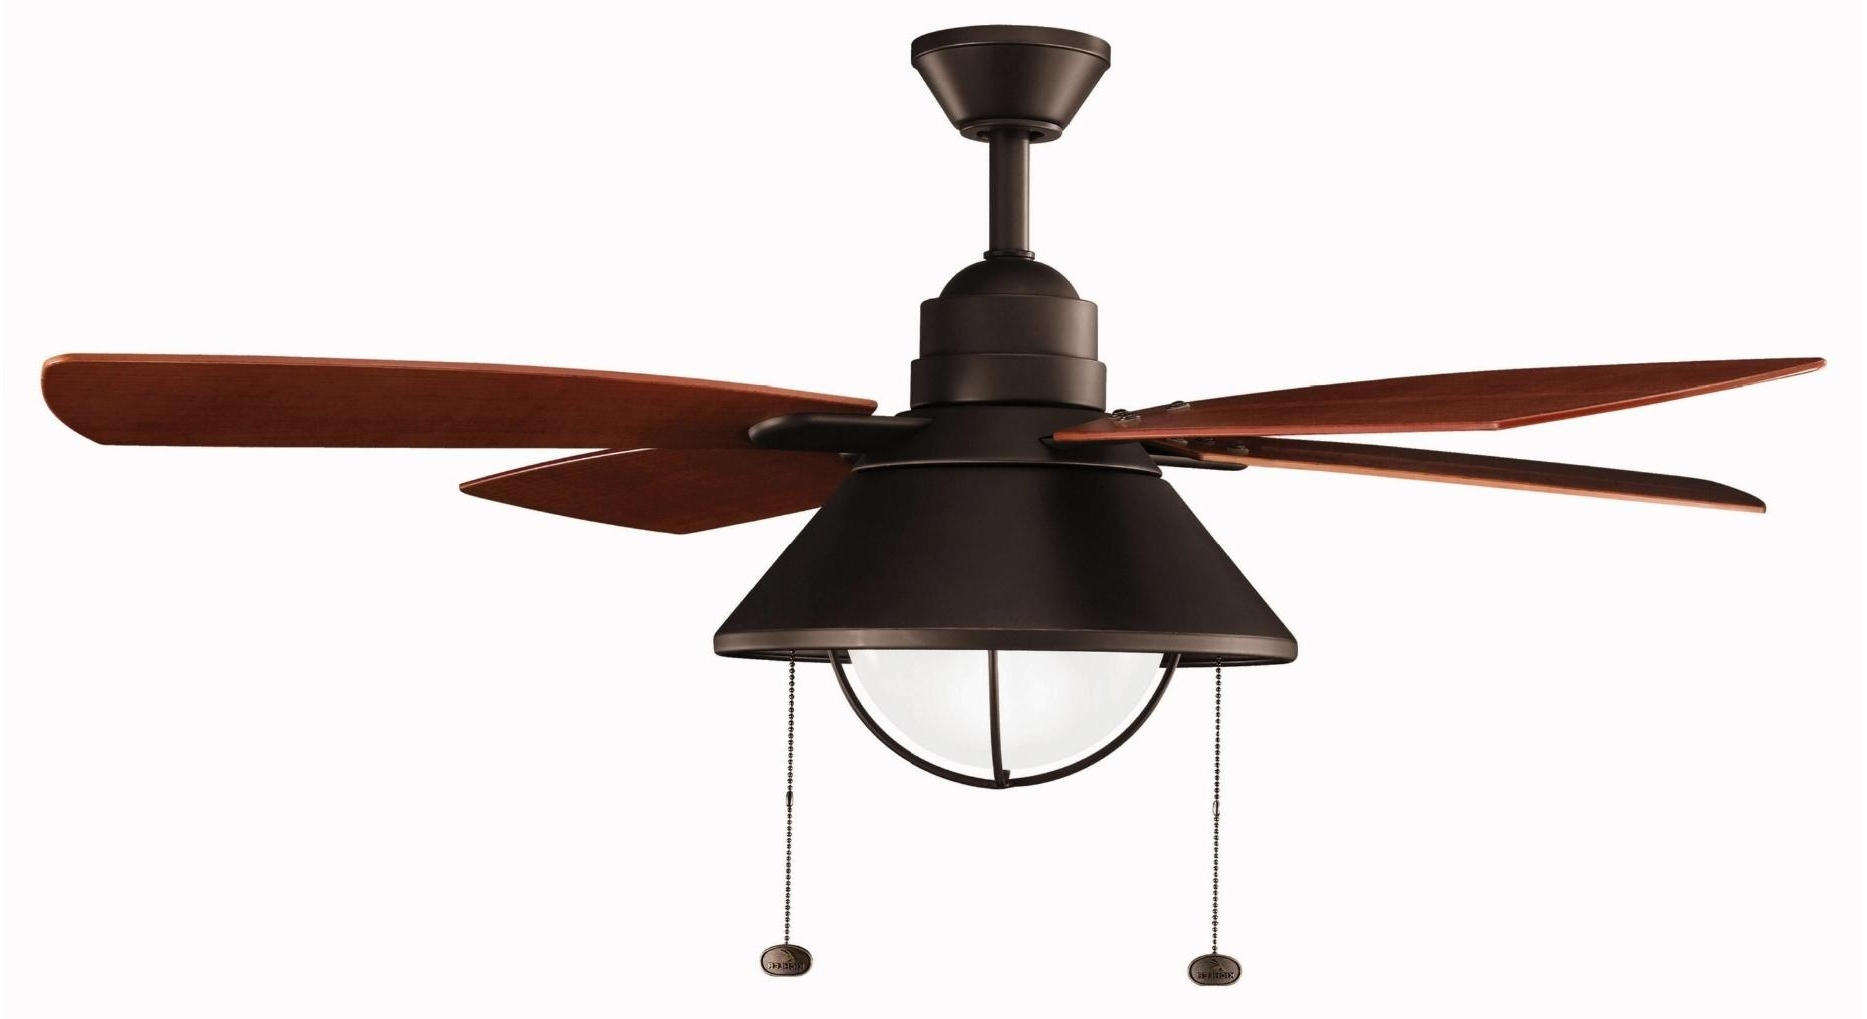 Most Popular Hugger Outdoor Ceiling Fans With Lights Intended For Decor: Living Hugger Ceiling Fans Trendy Outdoor Ceiling Fans With (View 15 of 20)